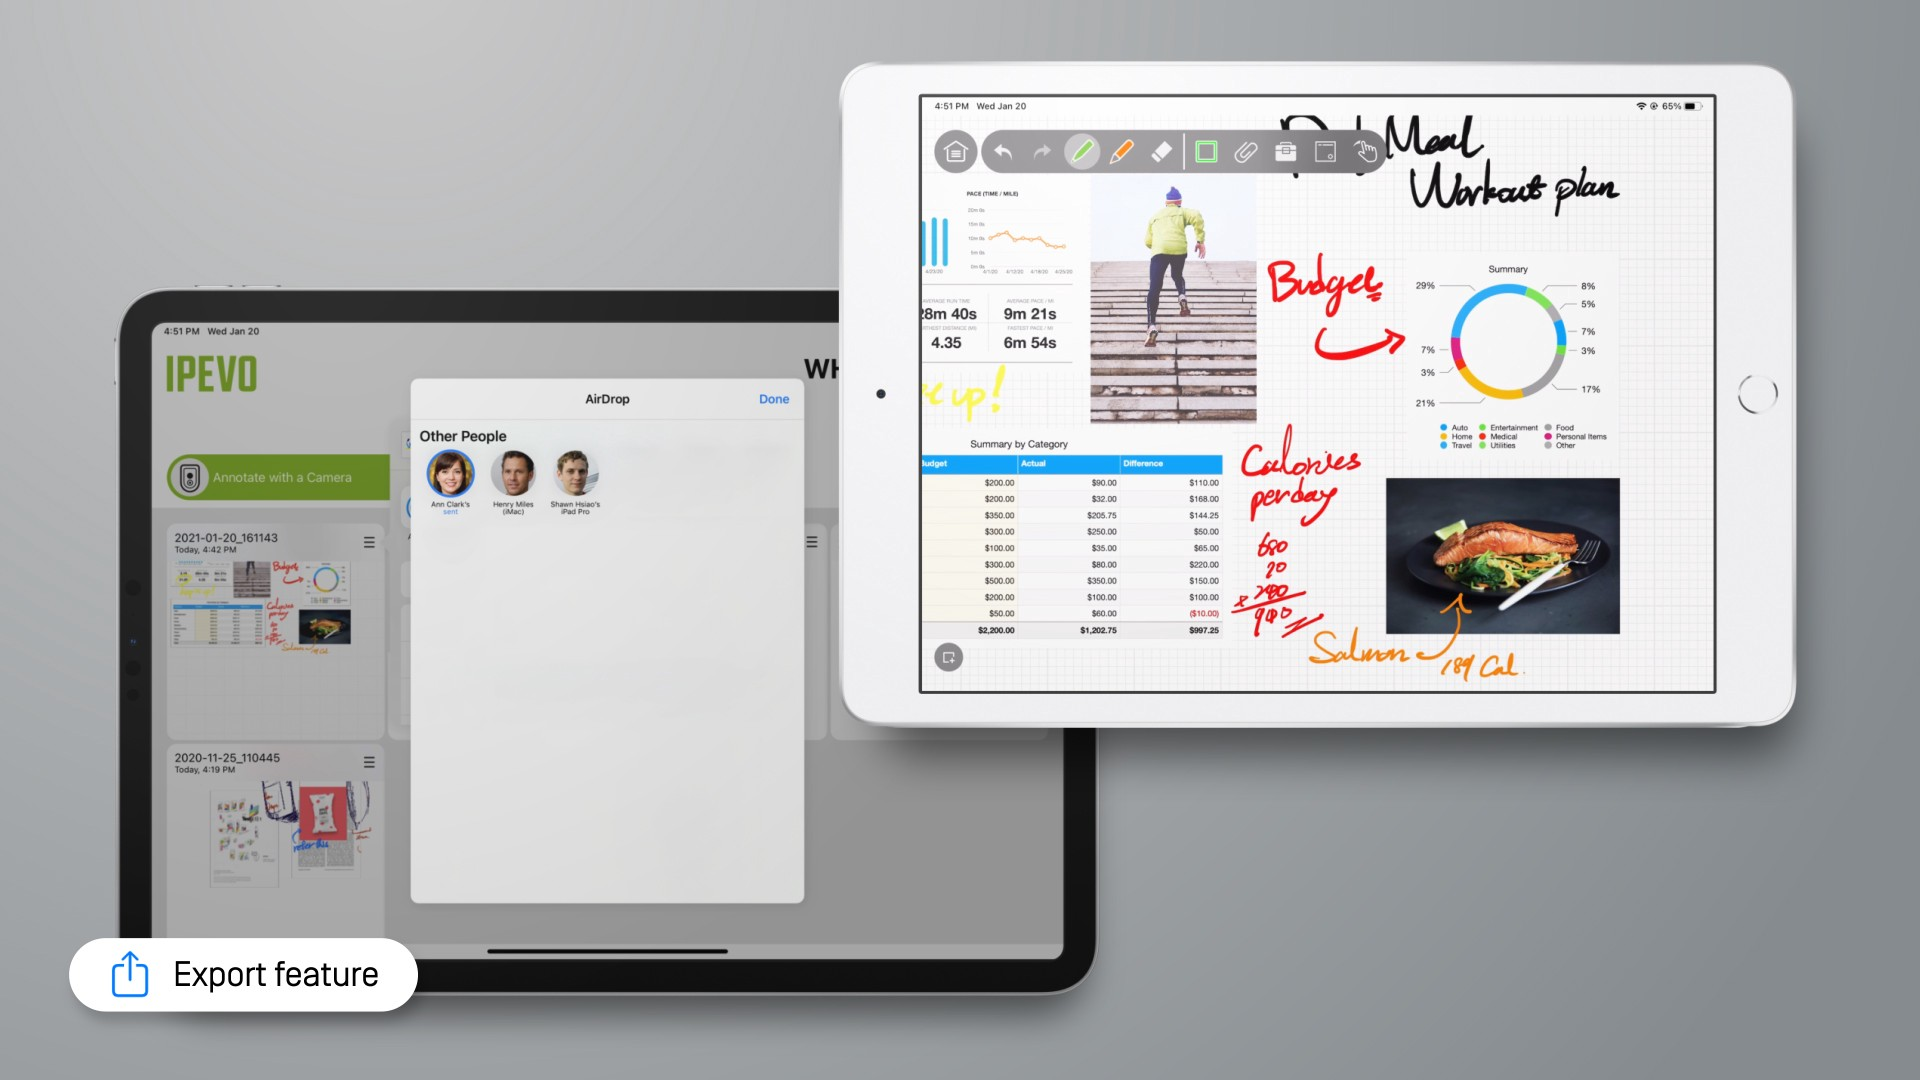 Export and share whiteboard projects